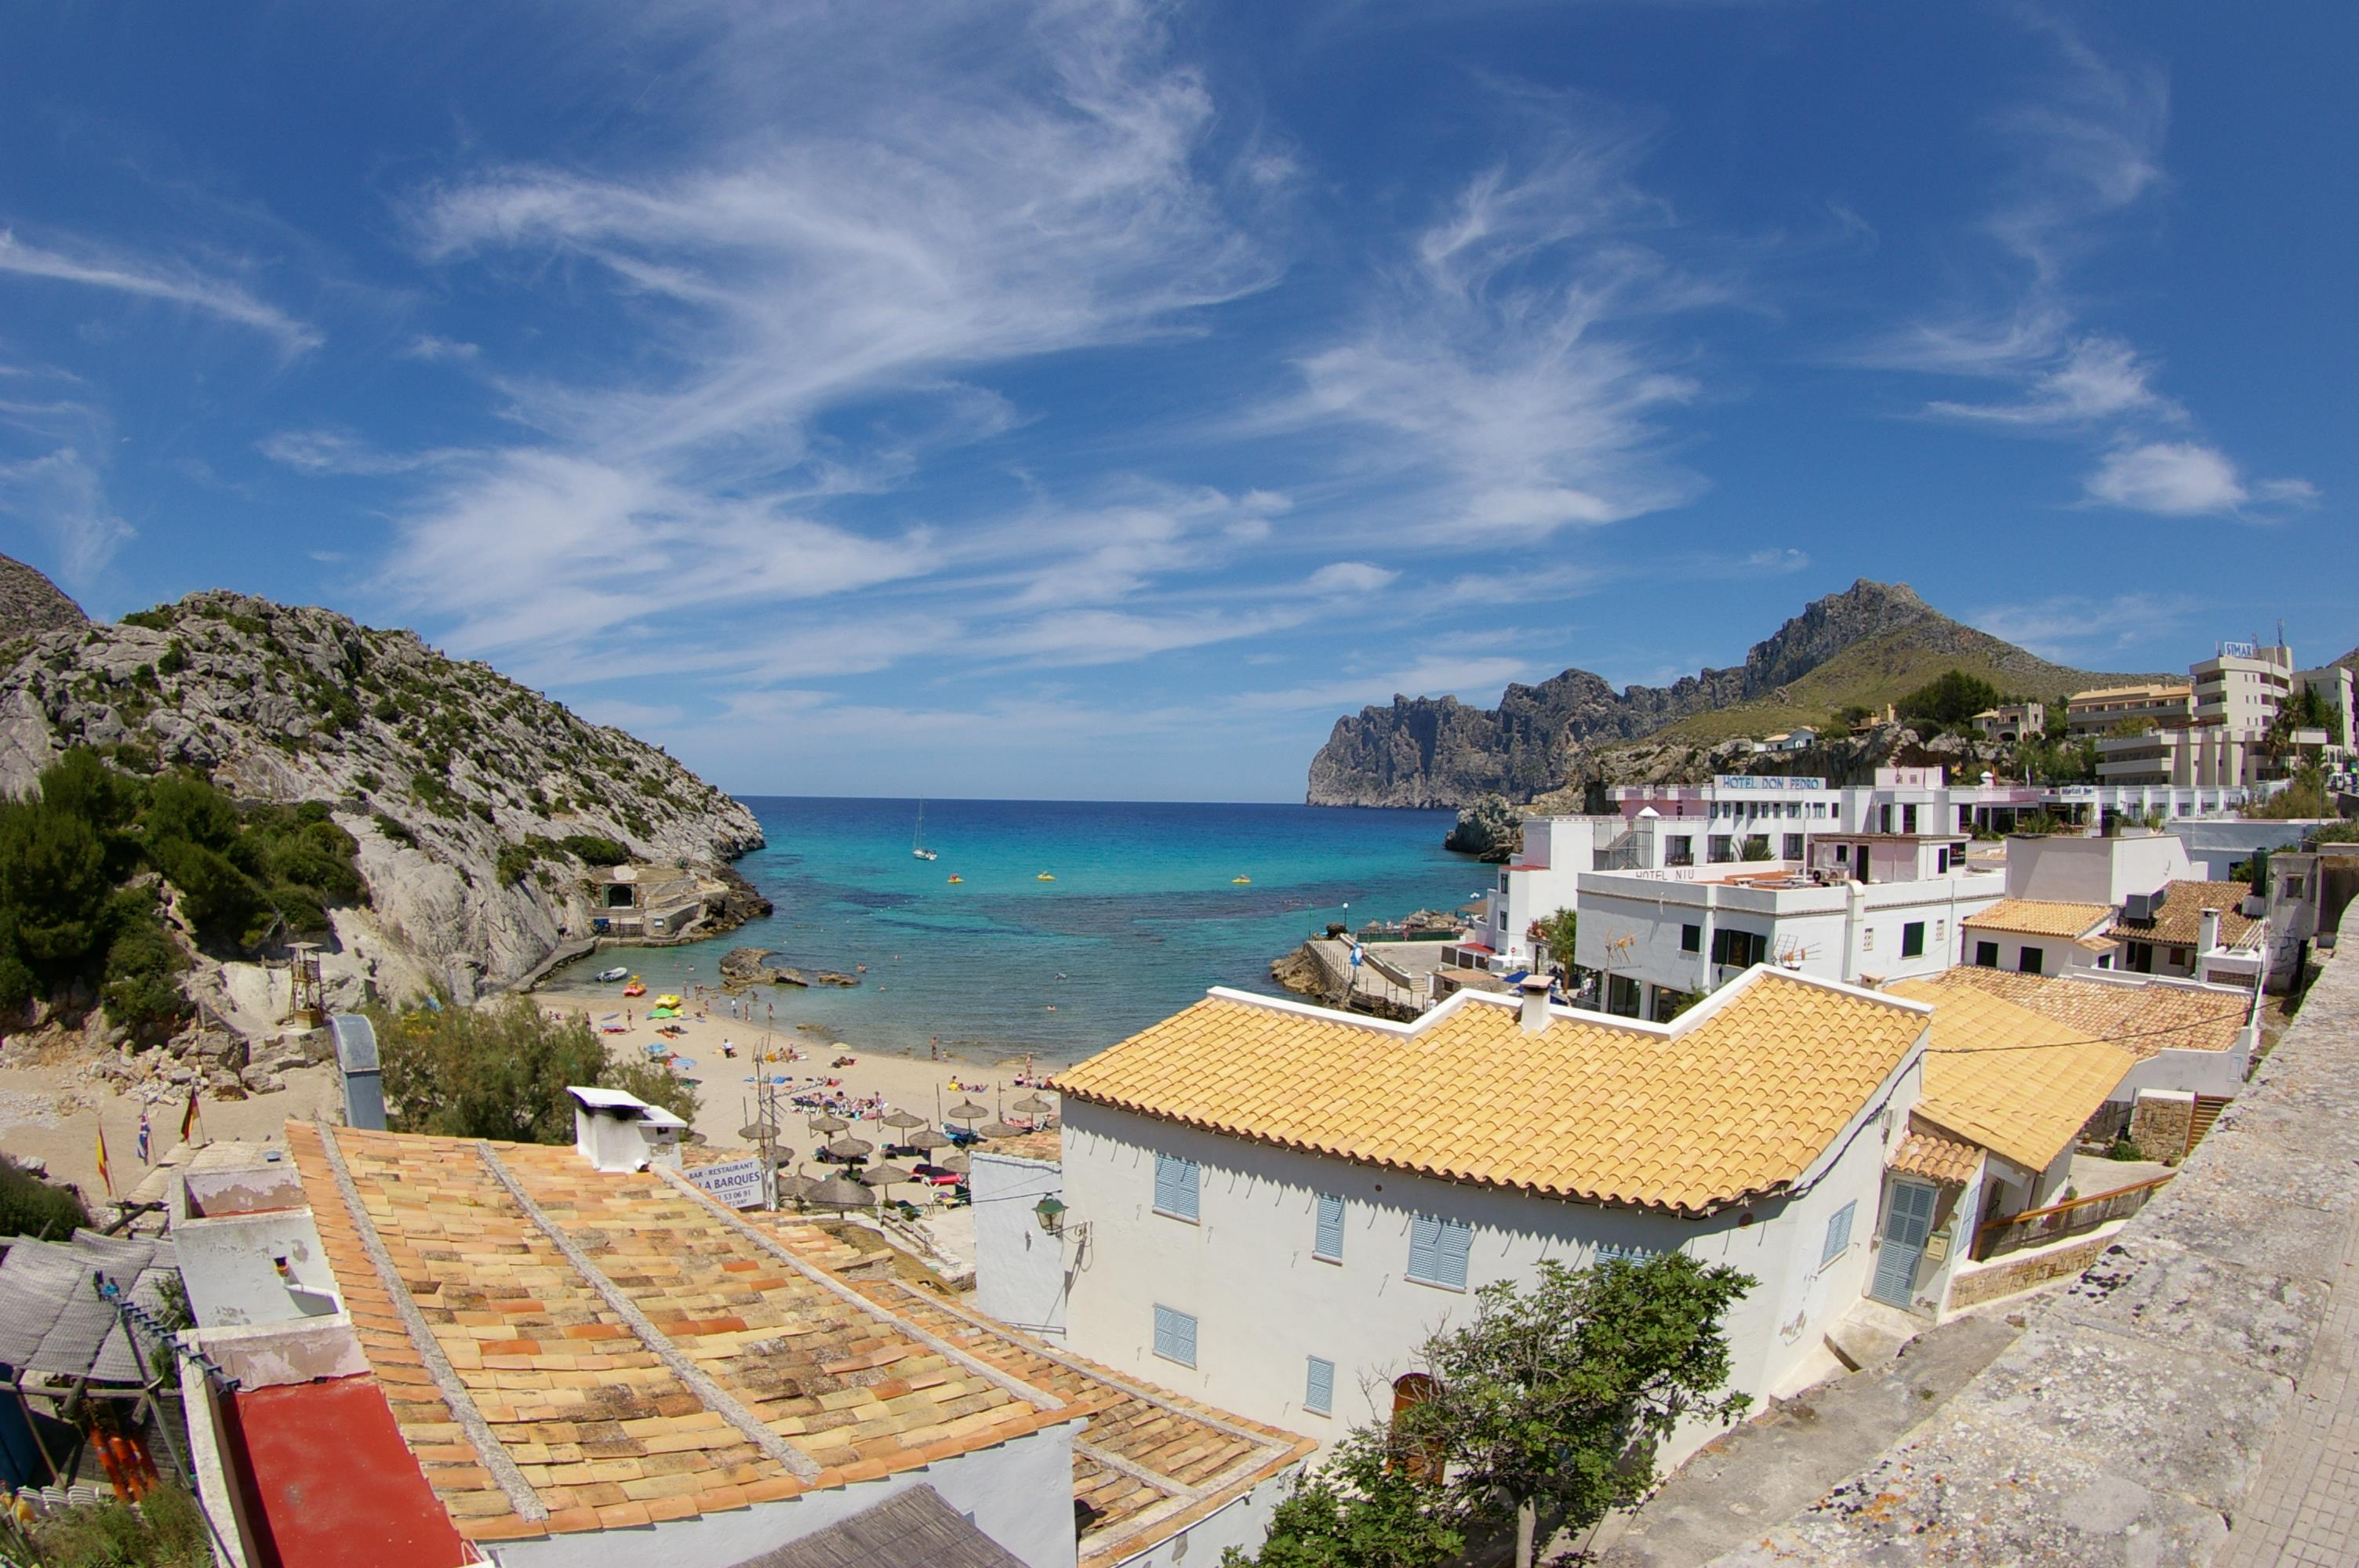 Menorca vs Majorca How to choose between these 2 Balearic Islands